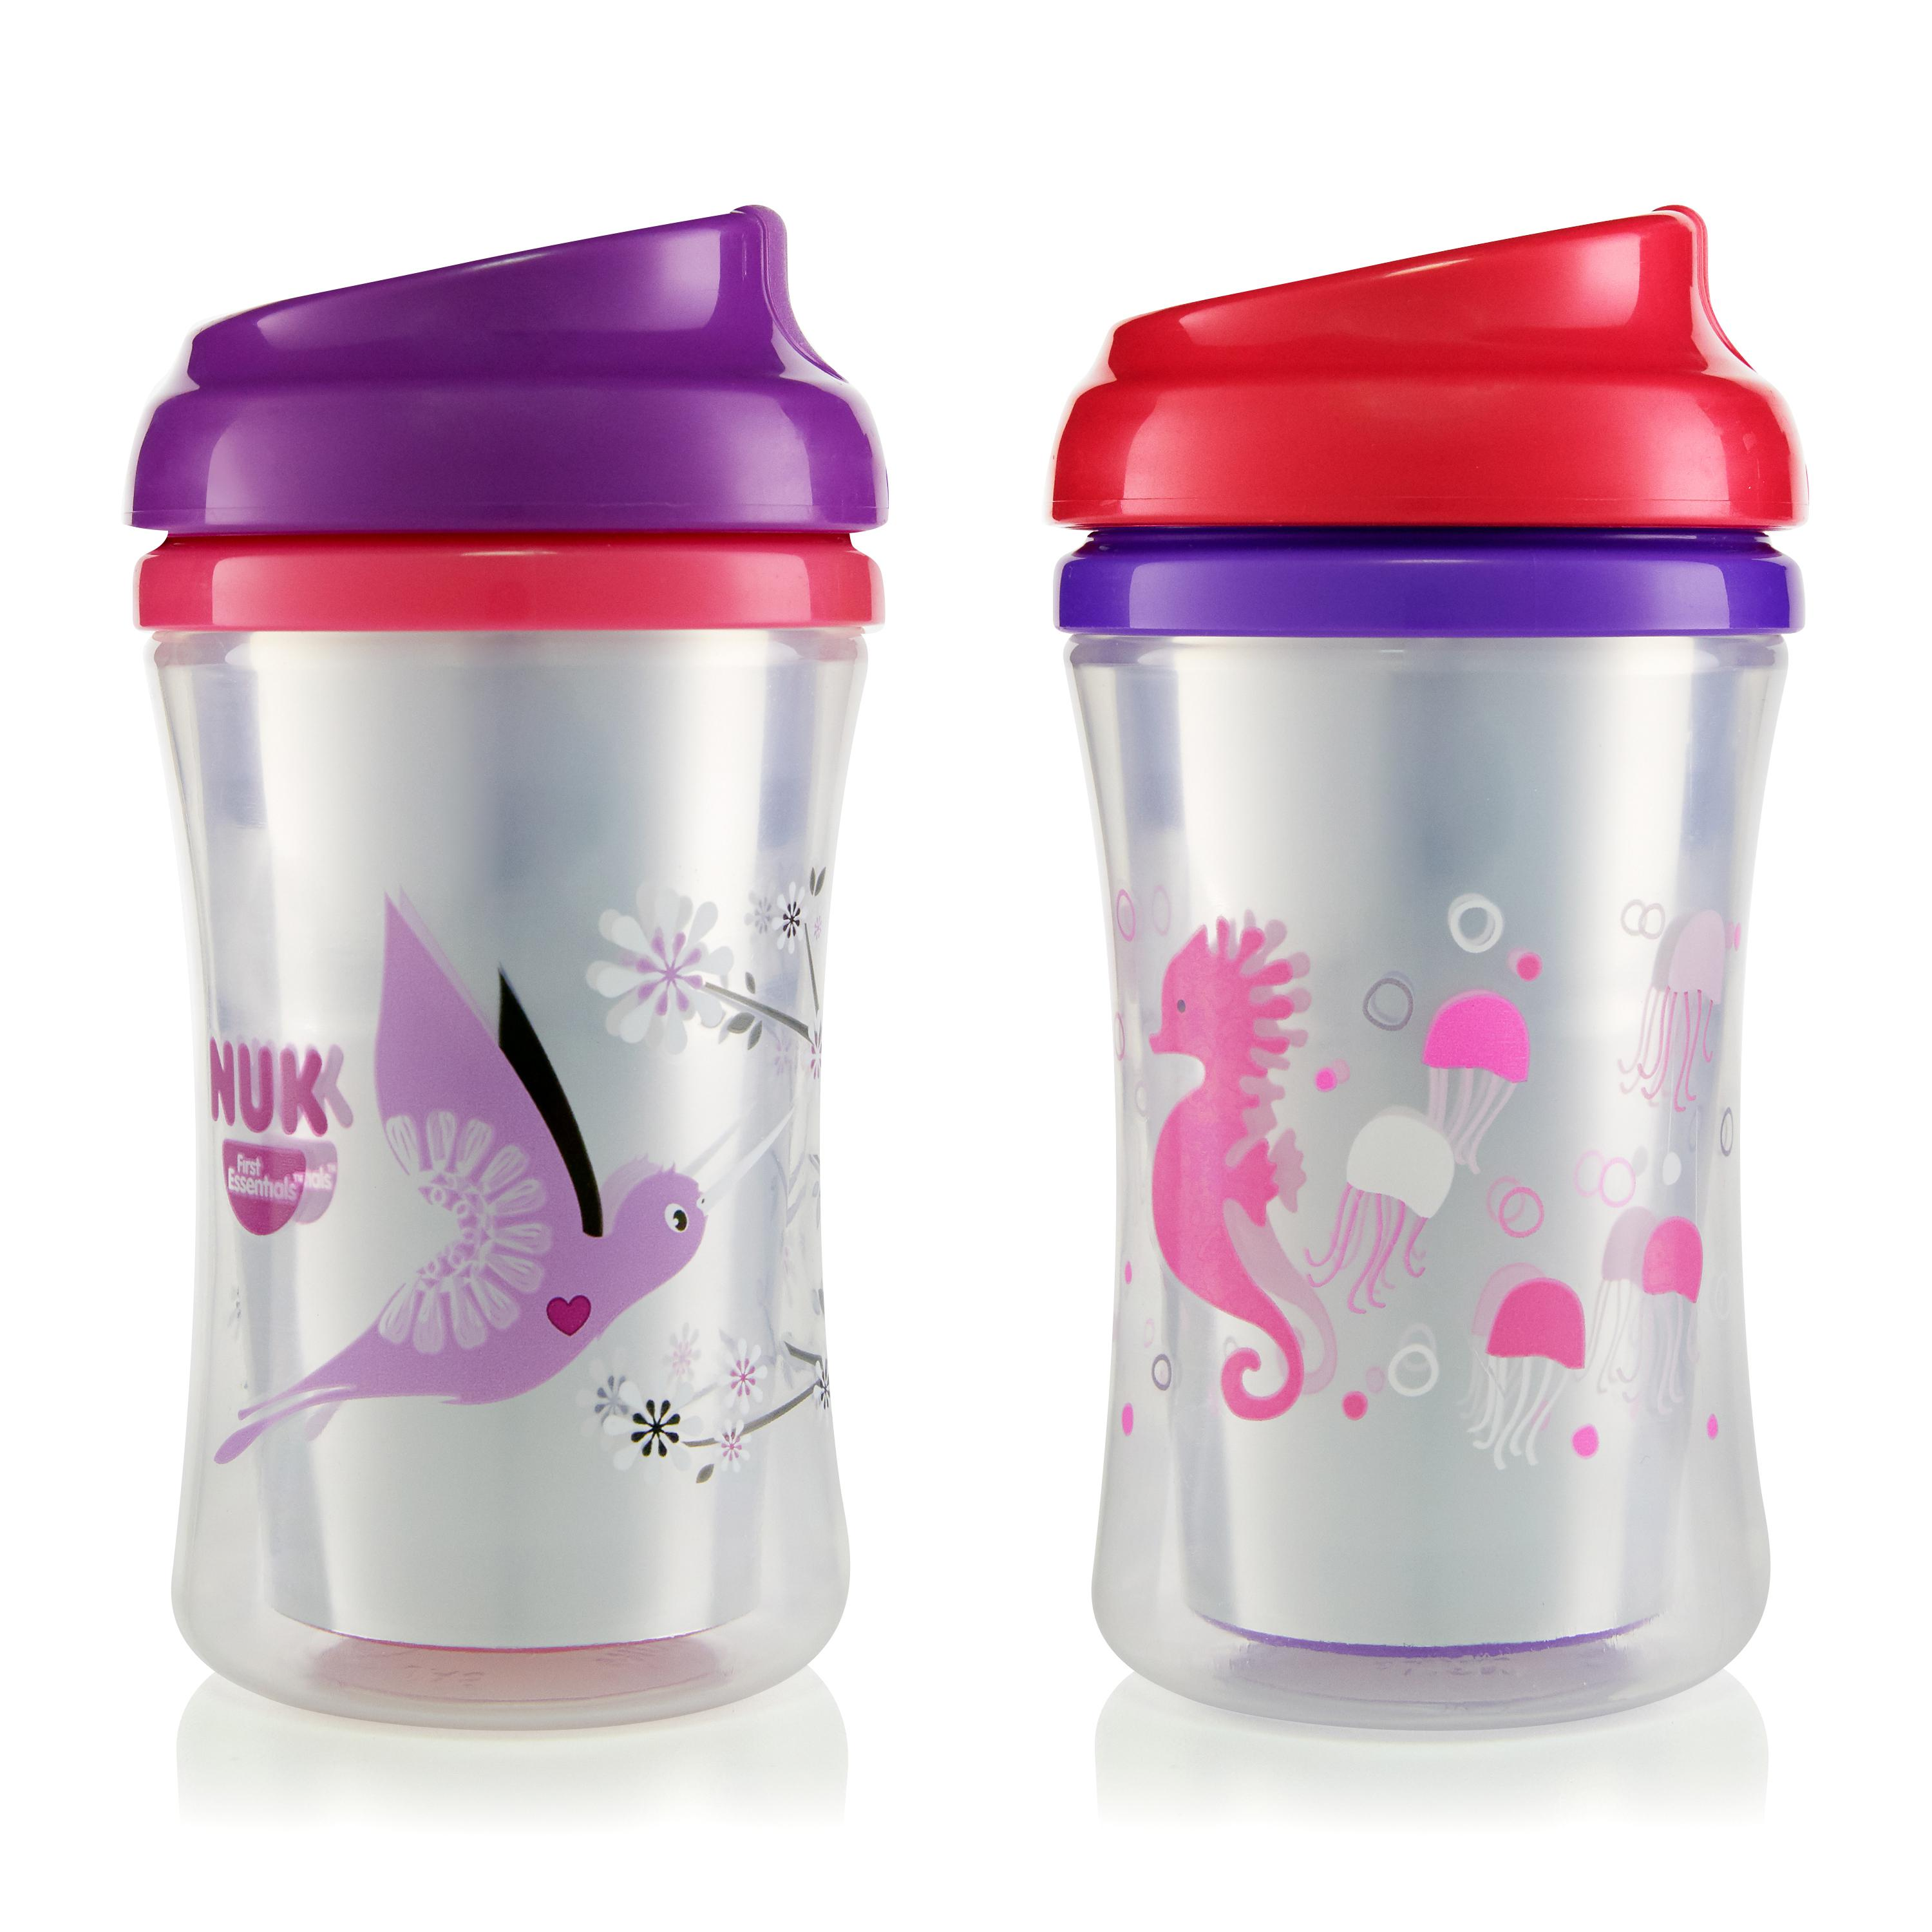 First Essentials by NUK™ Insulated Cup-like Rim Sippy Cup, 9 oz., 2-Pack Product Image 4 of 6